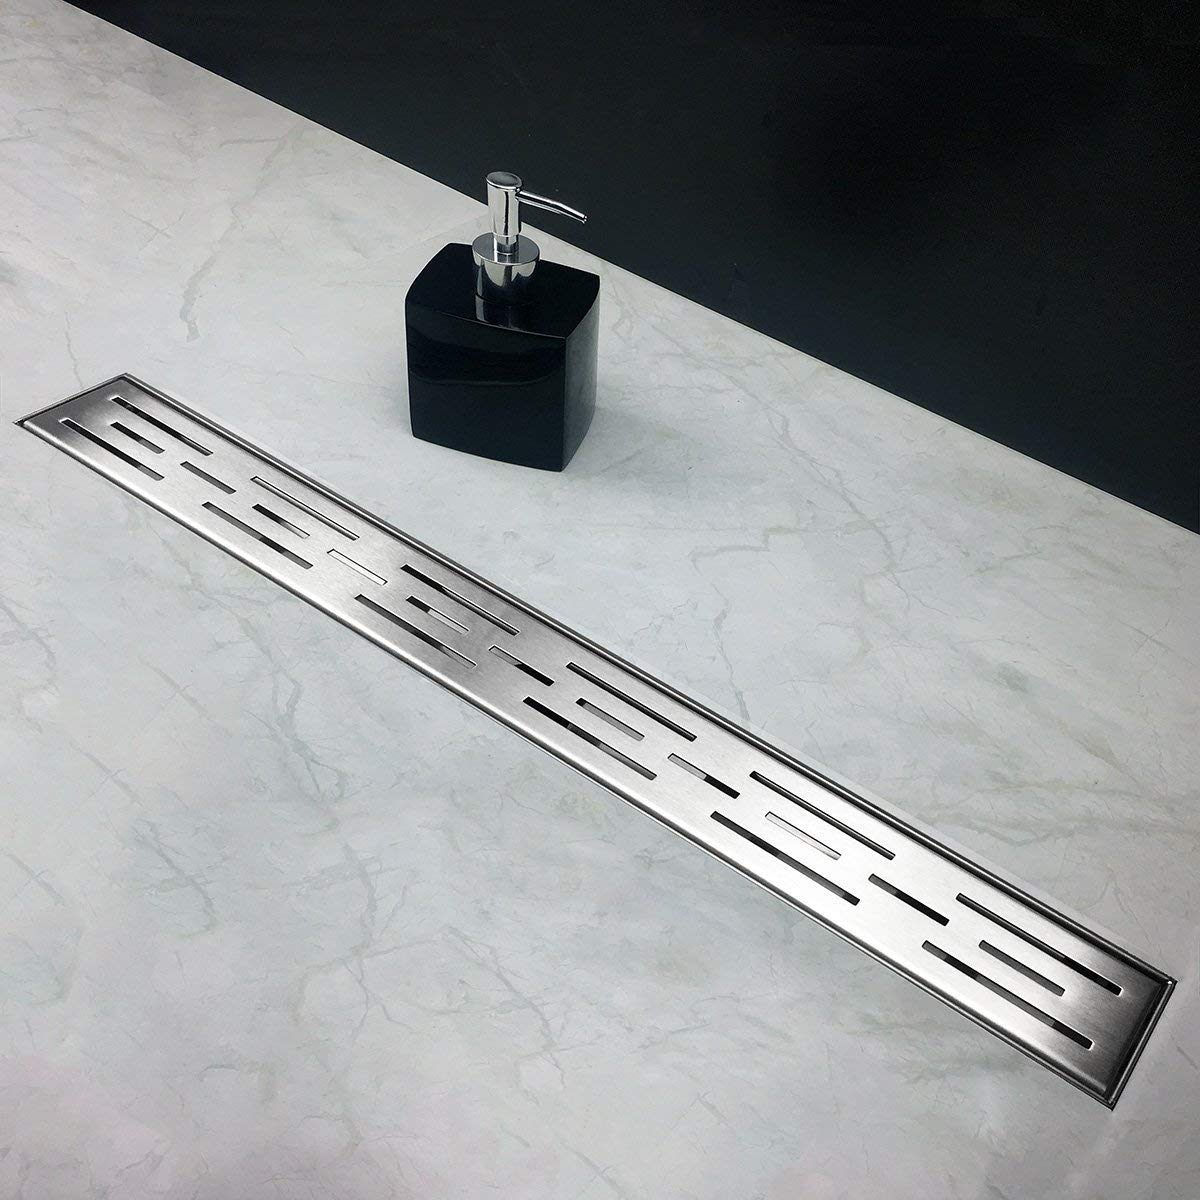 Neodrain 32 Inch Rectangular Linear Shower Drain with Brick Pattern Grate, Brushed 304 Stainless Steel Bathroom Floor Drain,Shower Floor Drain with Includes Adjustable Leveling Feet, Hair Strainer